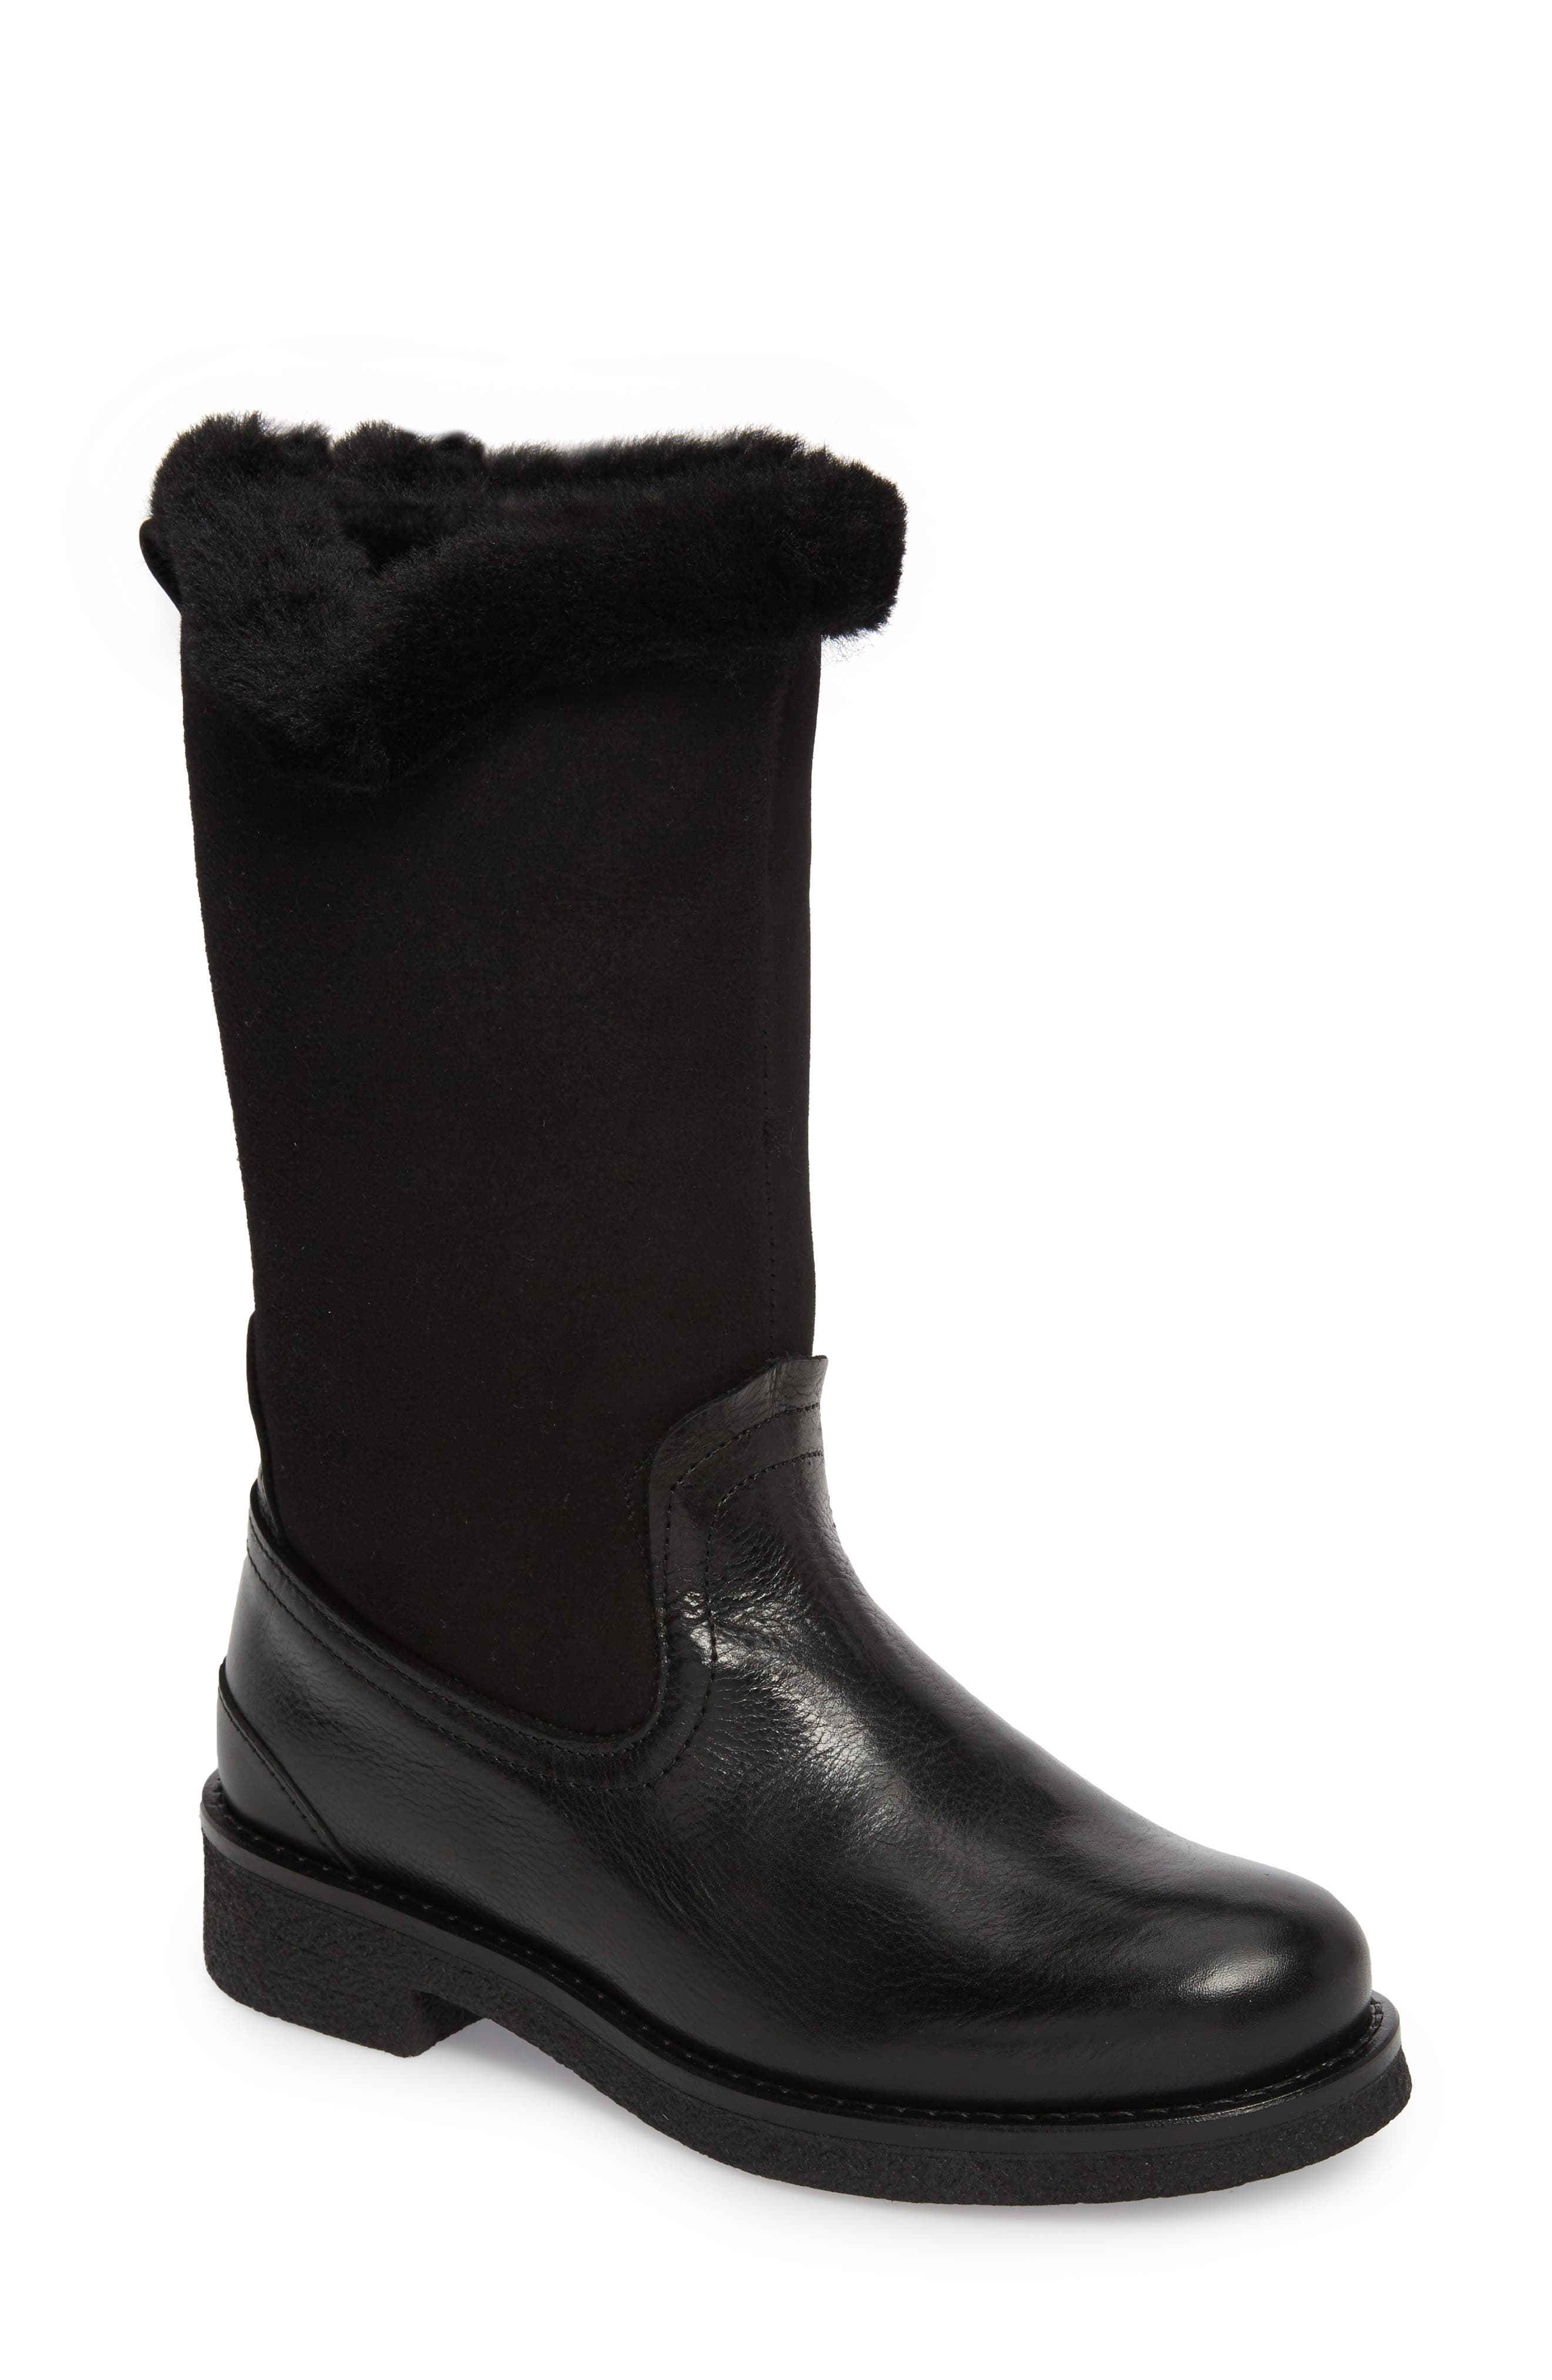 Amarillo Waterproof Insulated Snow Boot,                             Main thumbnail 1, color,                             Black Fur Leather